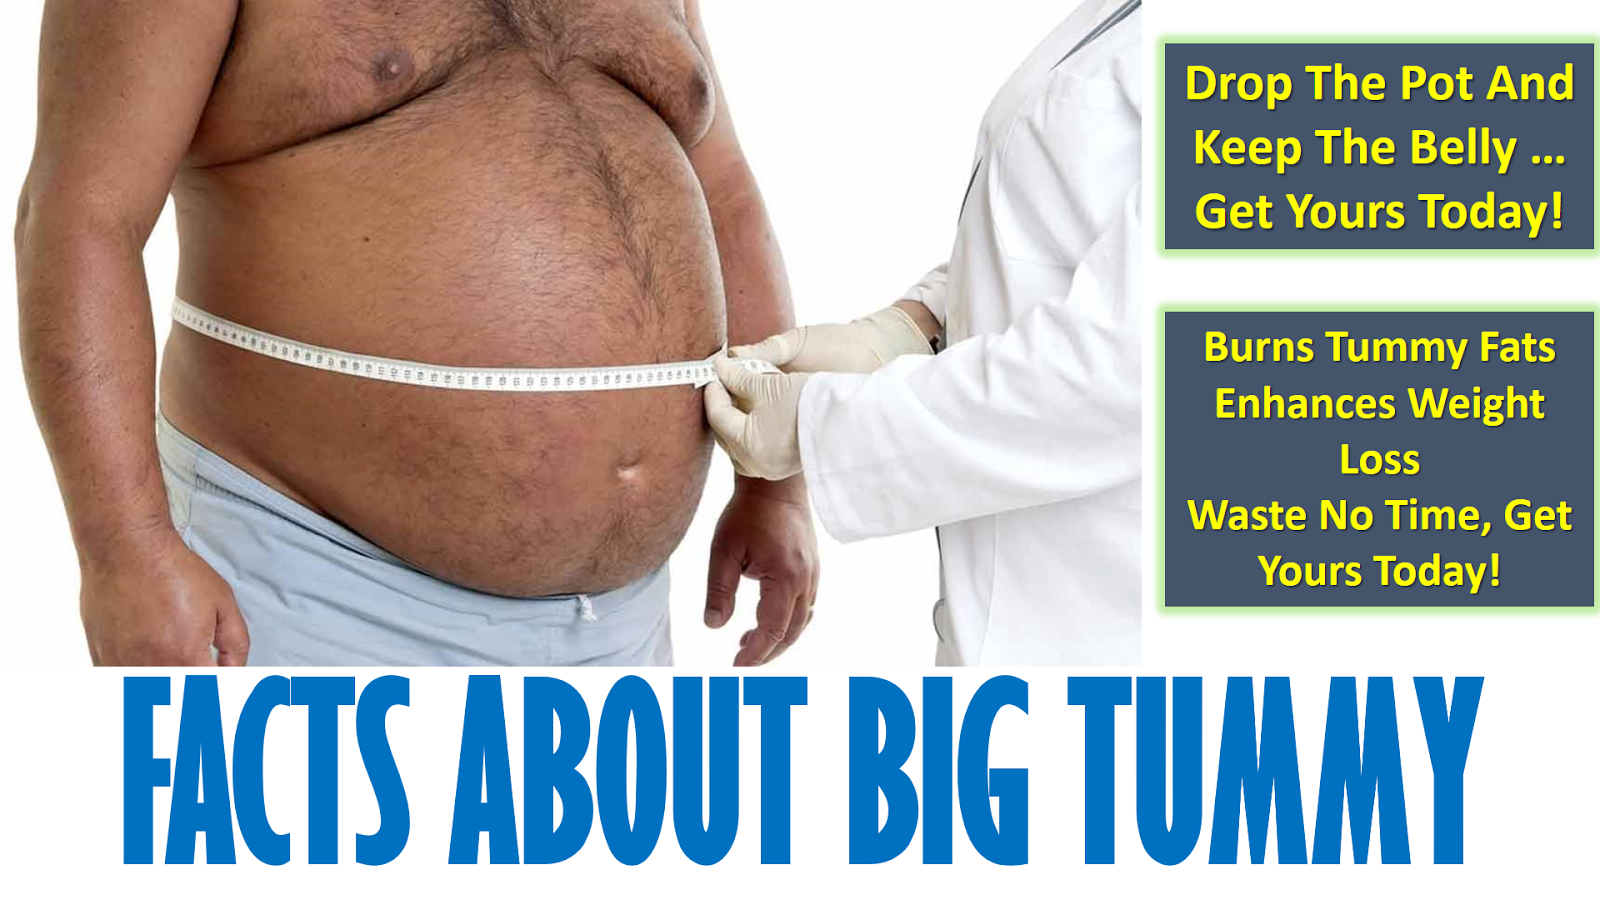 FACTS ABOUT BIG TUMMY